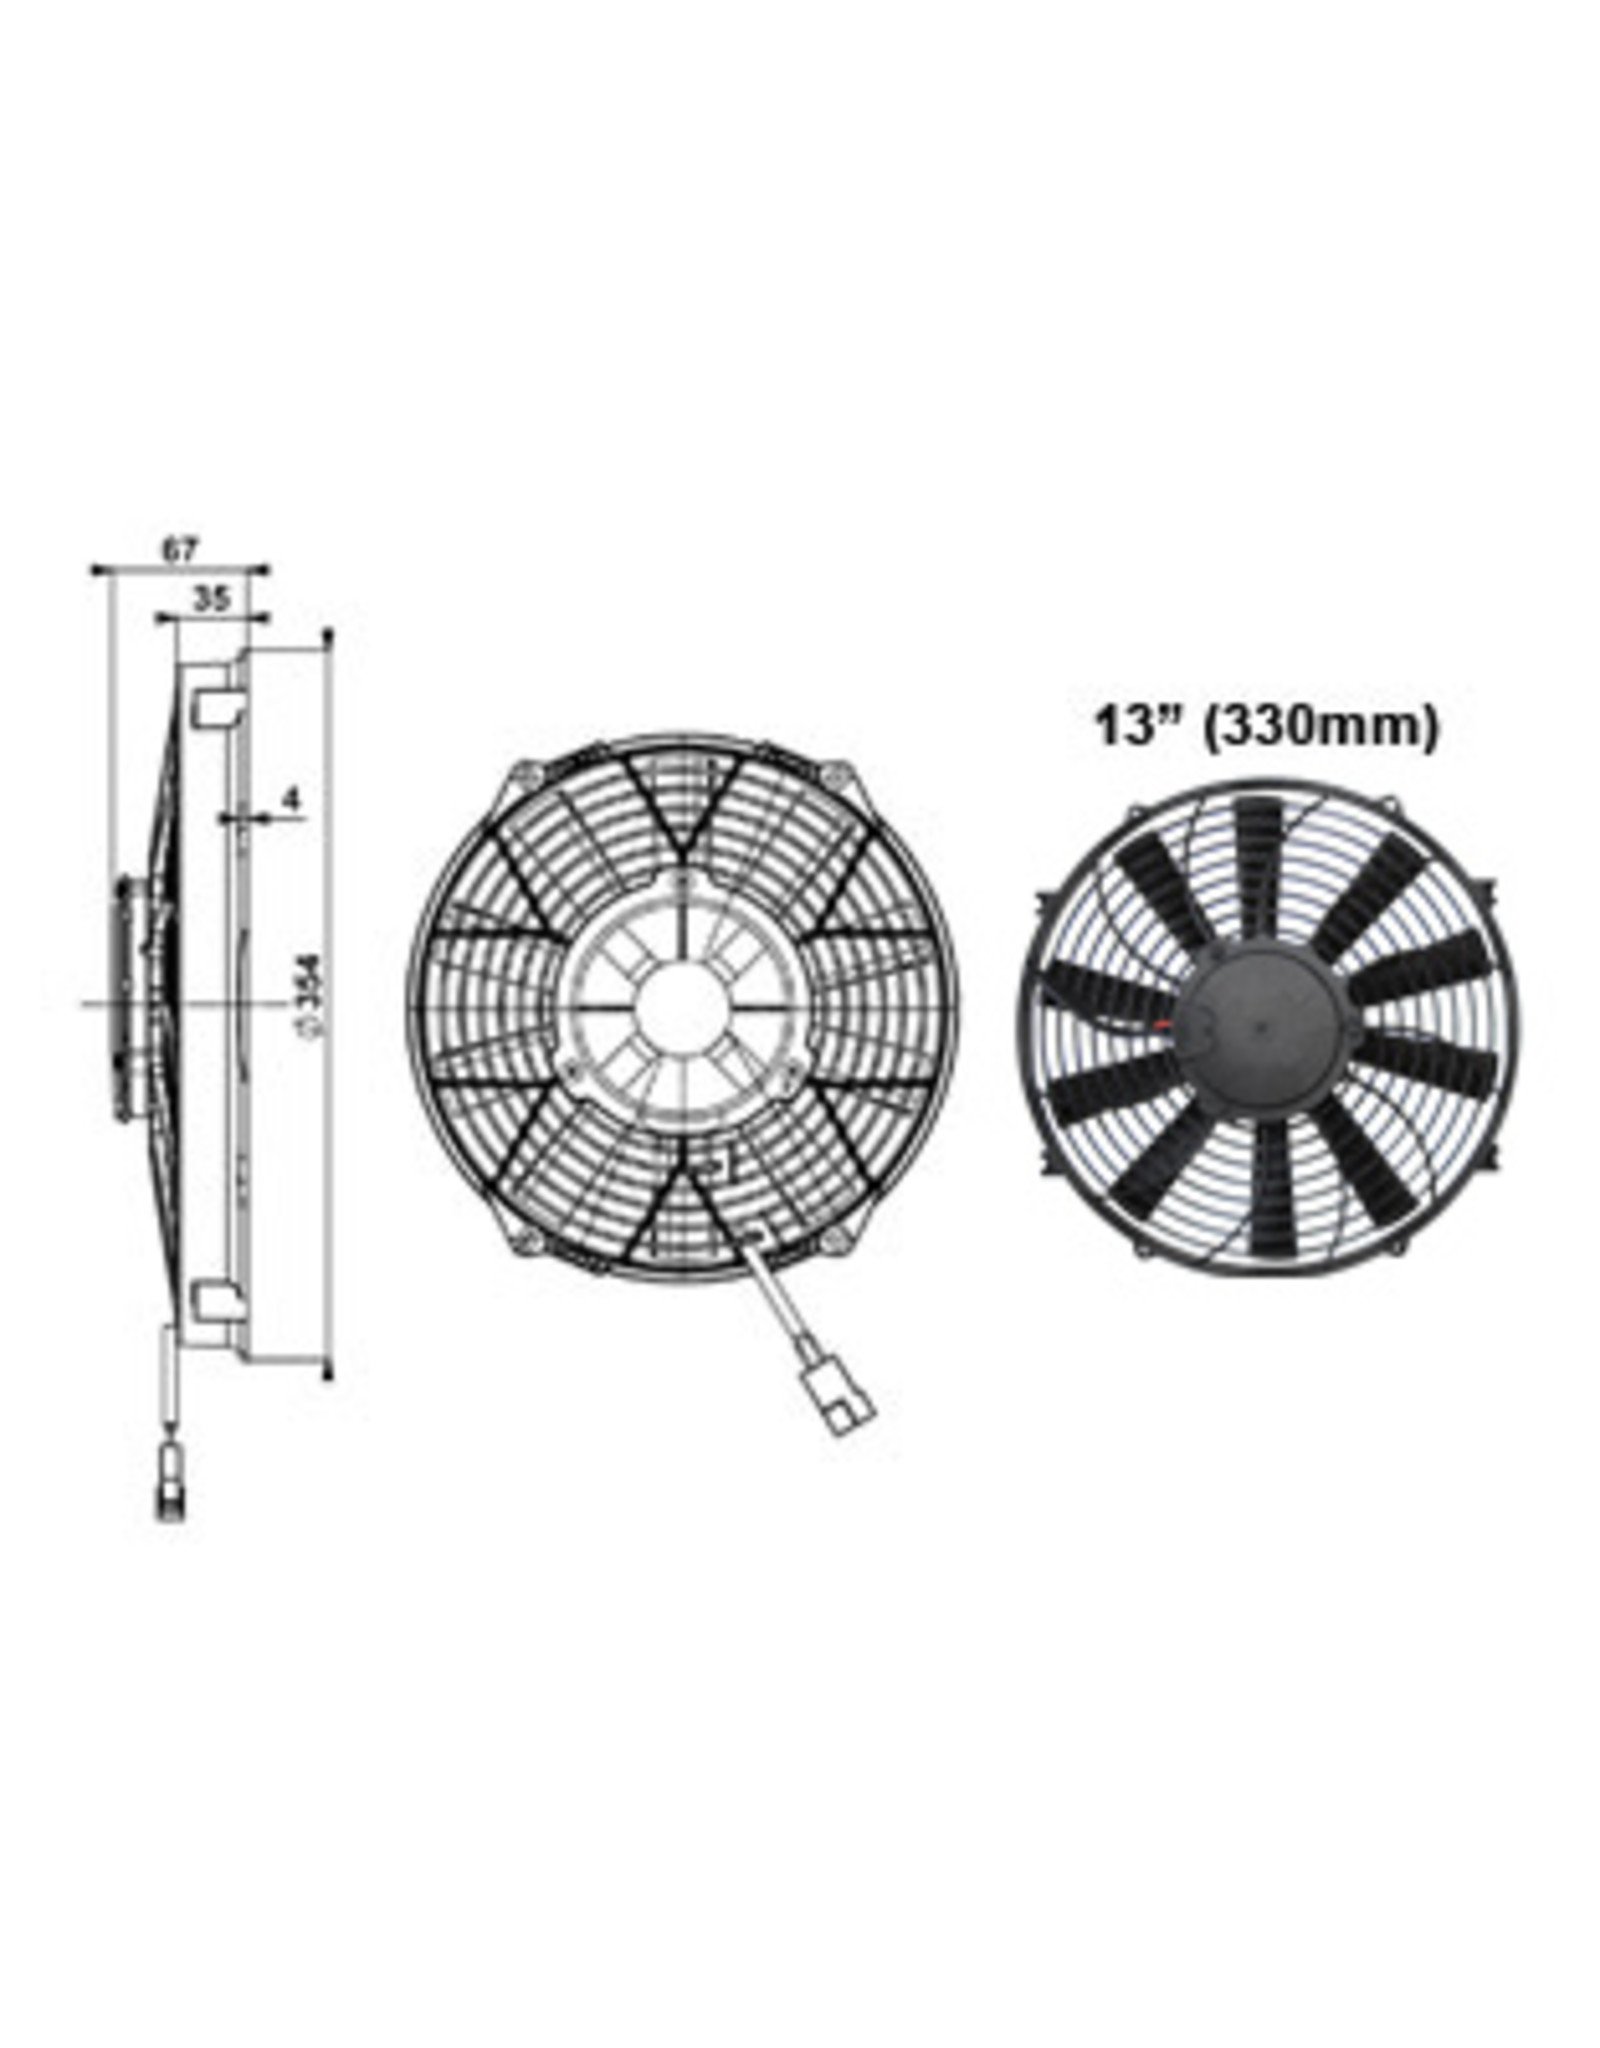 "Comex 13"" (330mm) Pusher/Blower Fan"